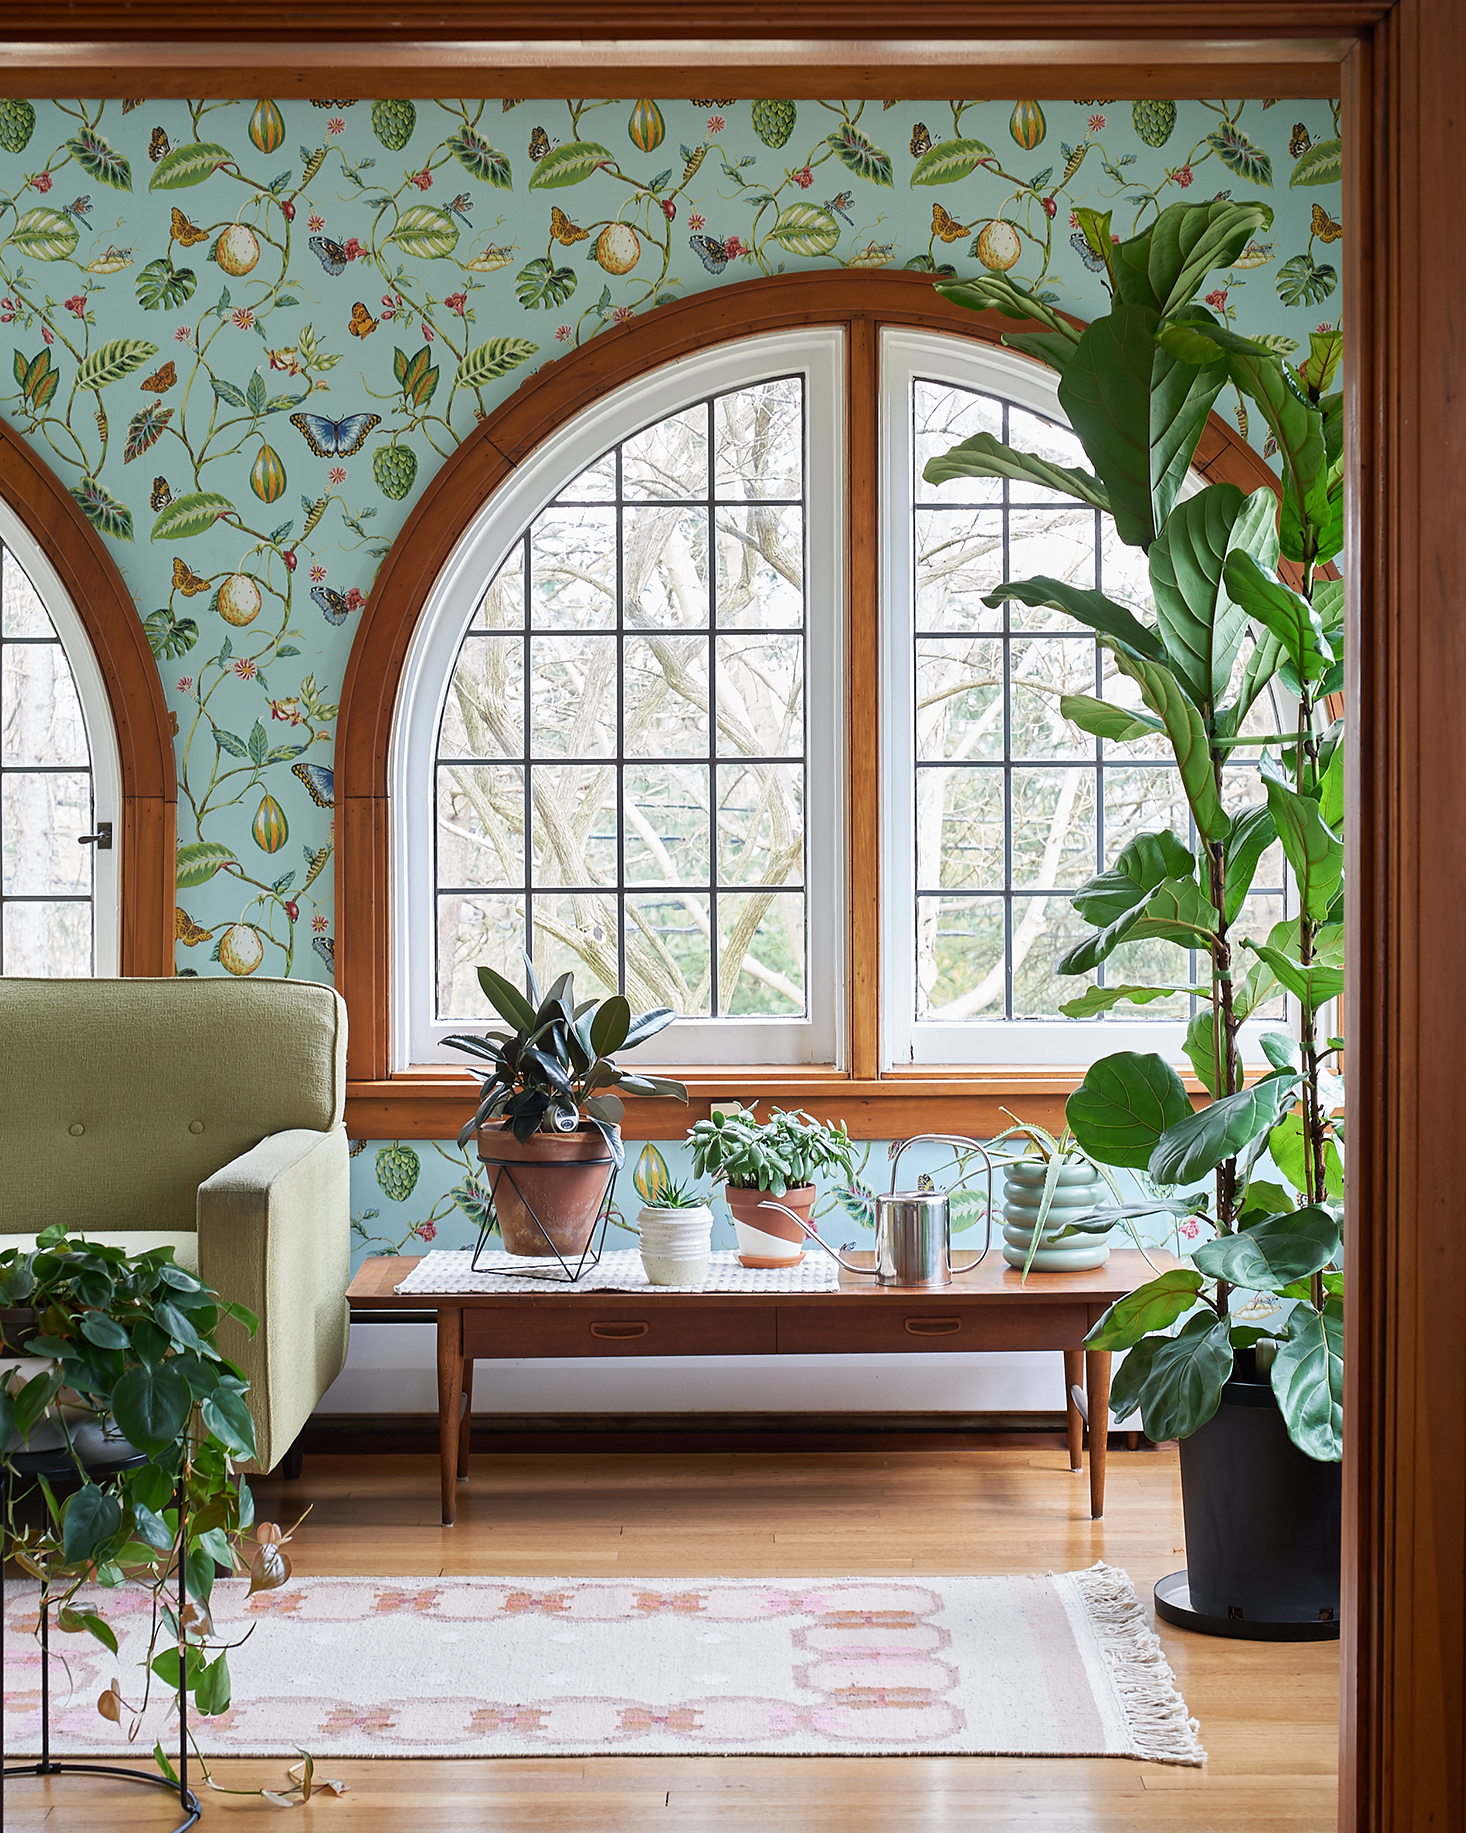 Sunroom with arched windows fiddle leaf fig